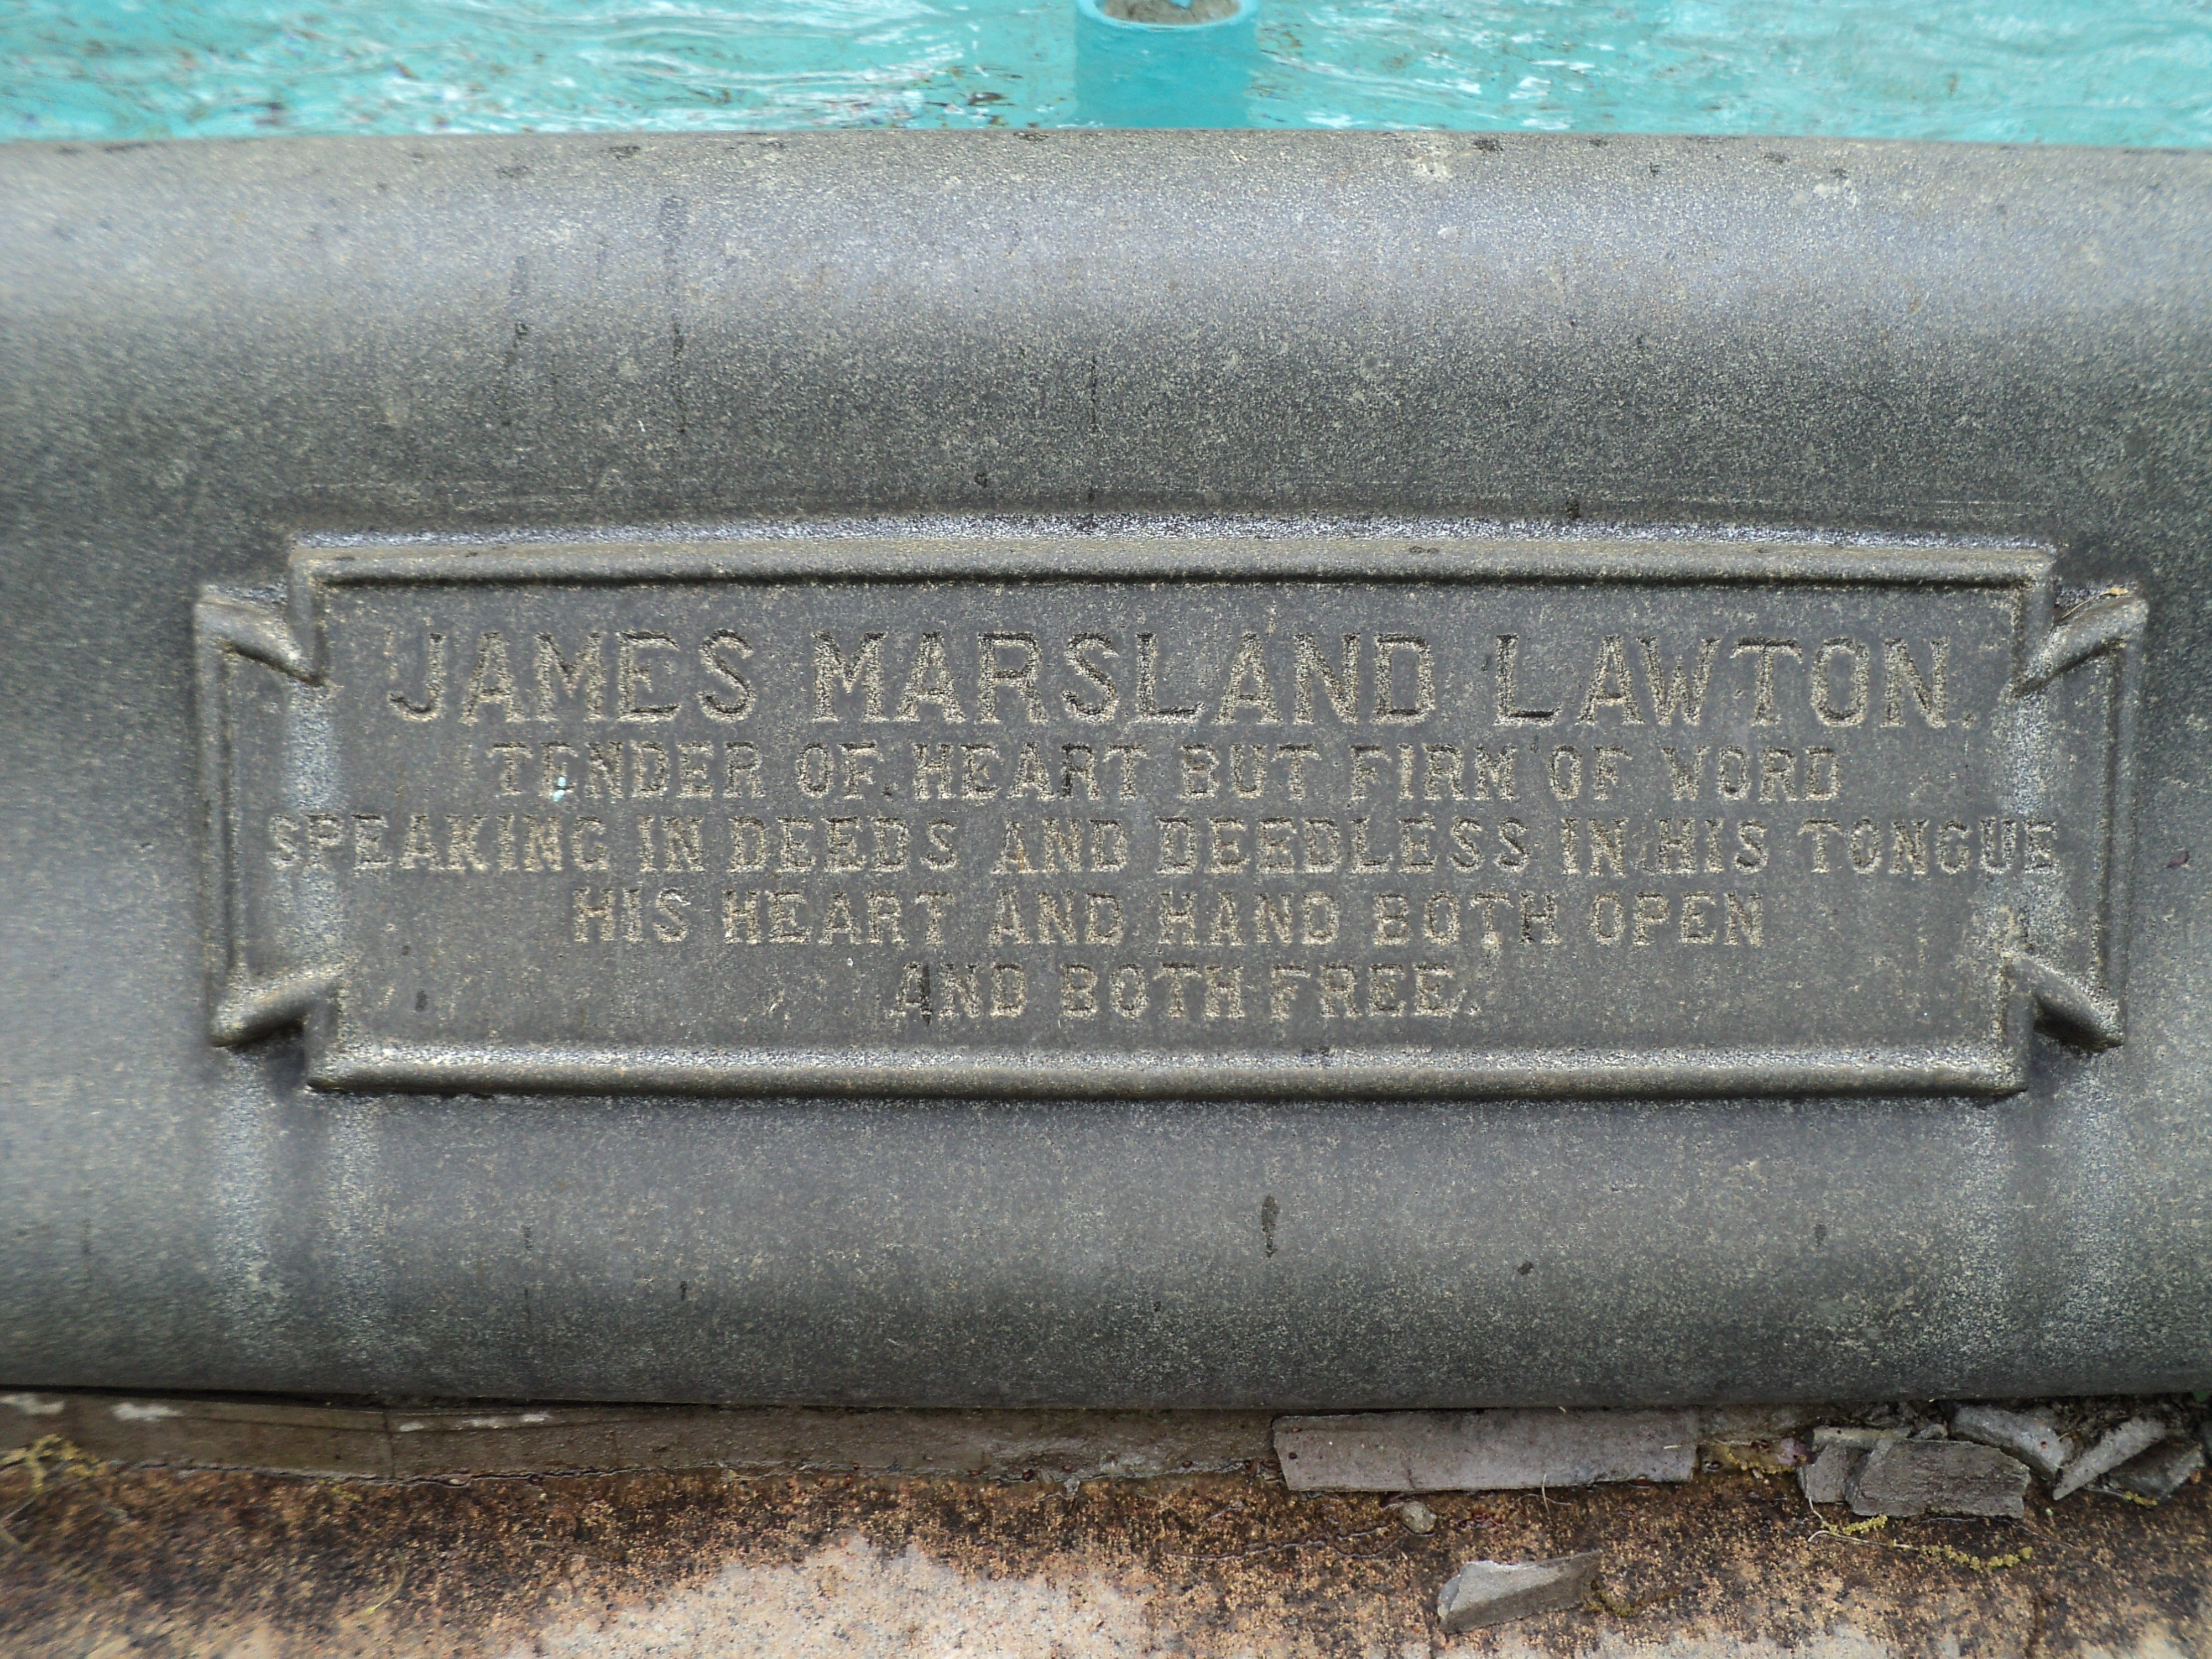 James Marsland Lawton Marker